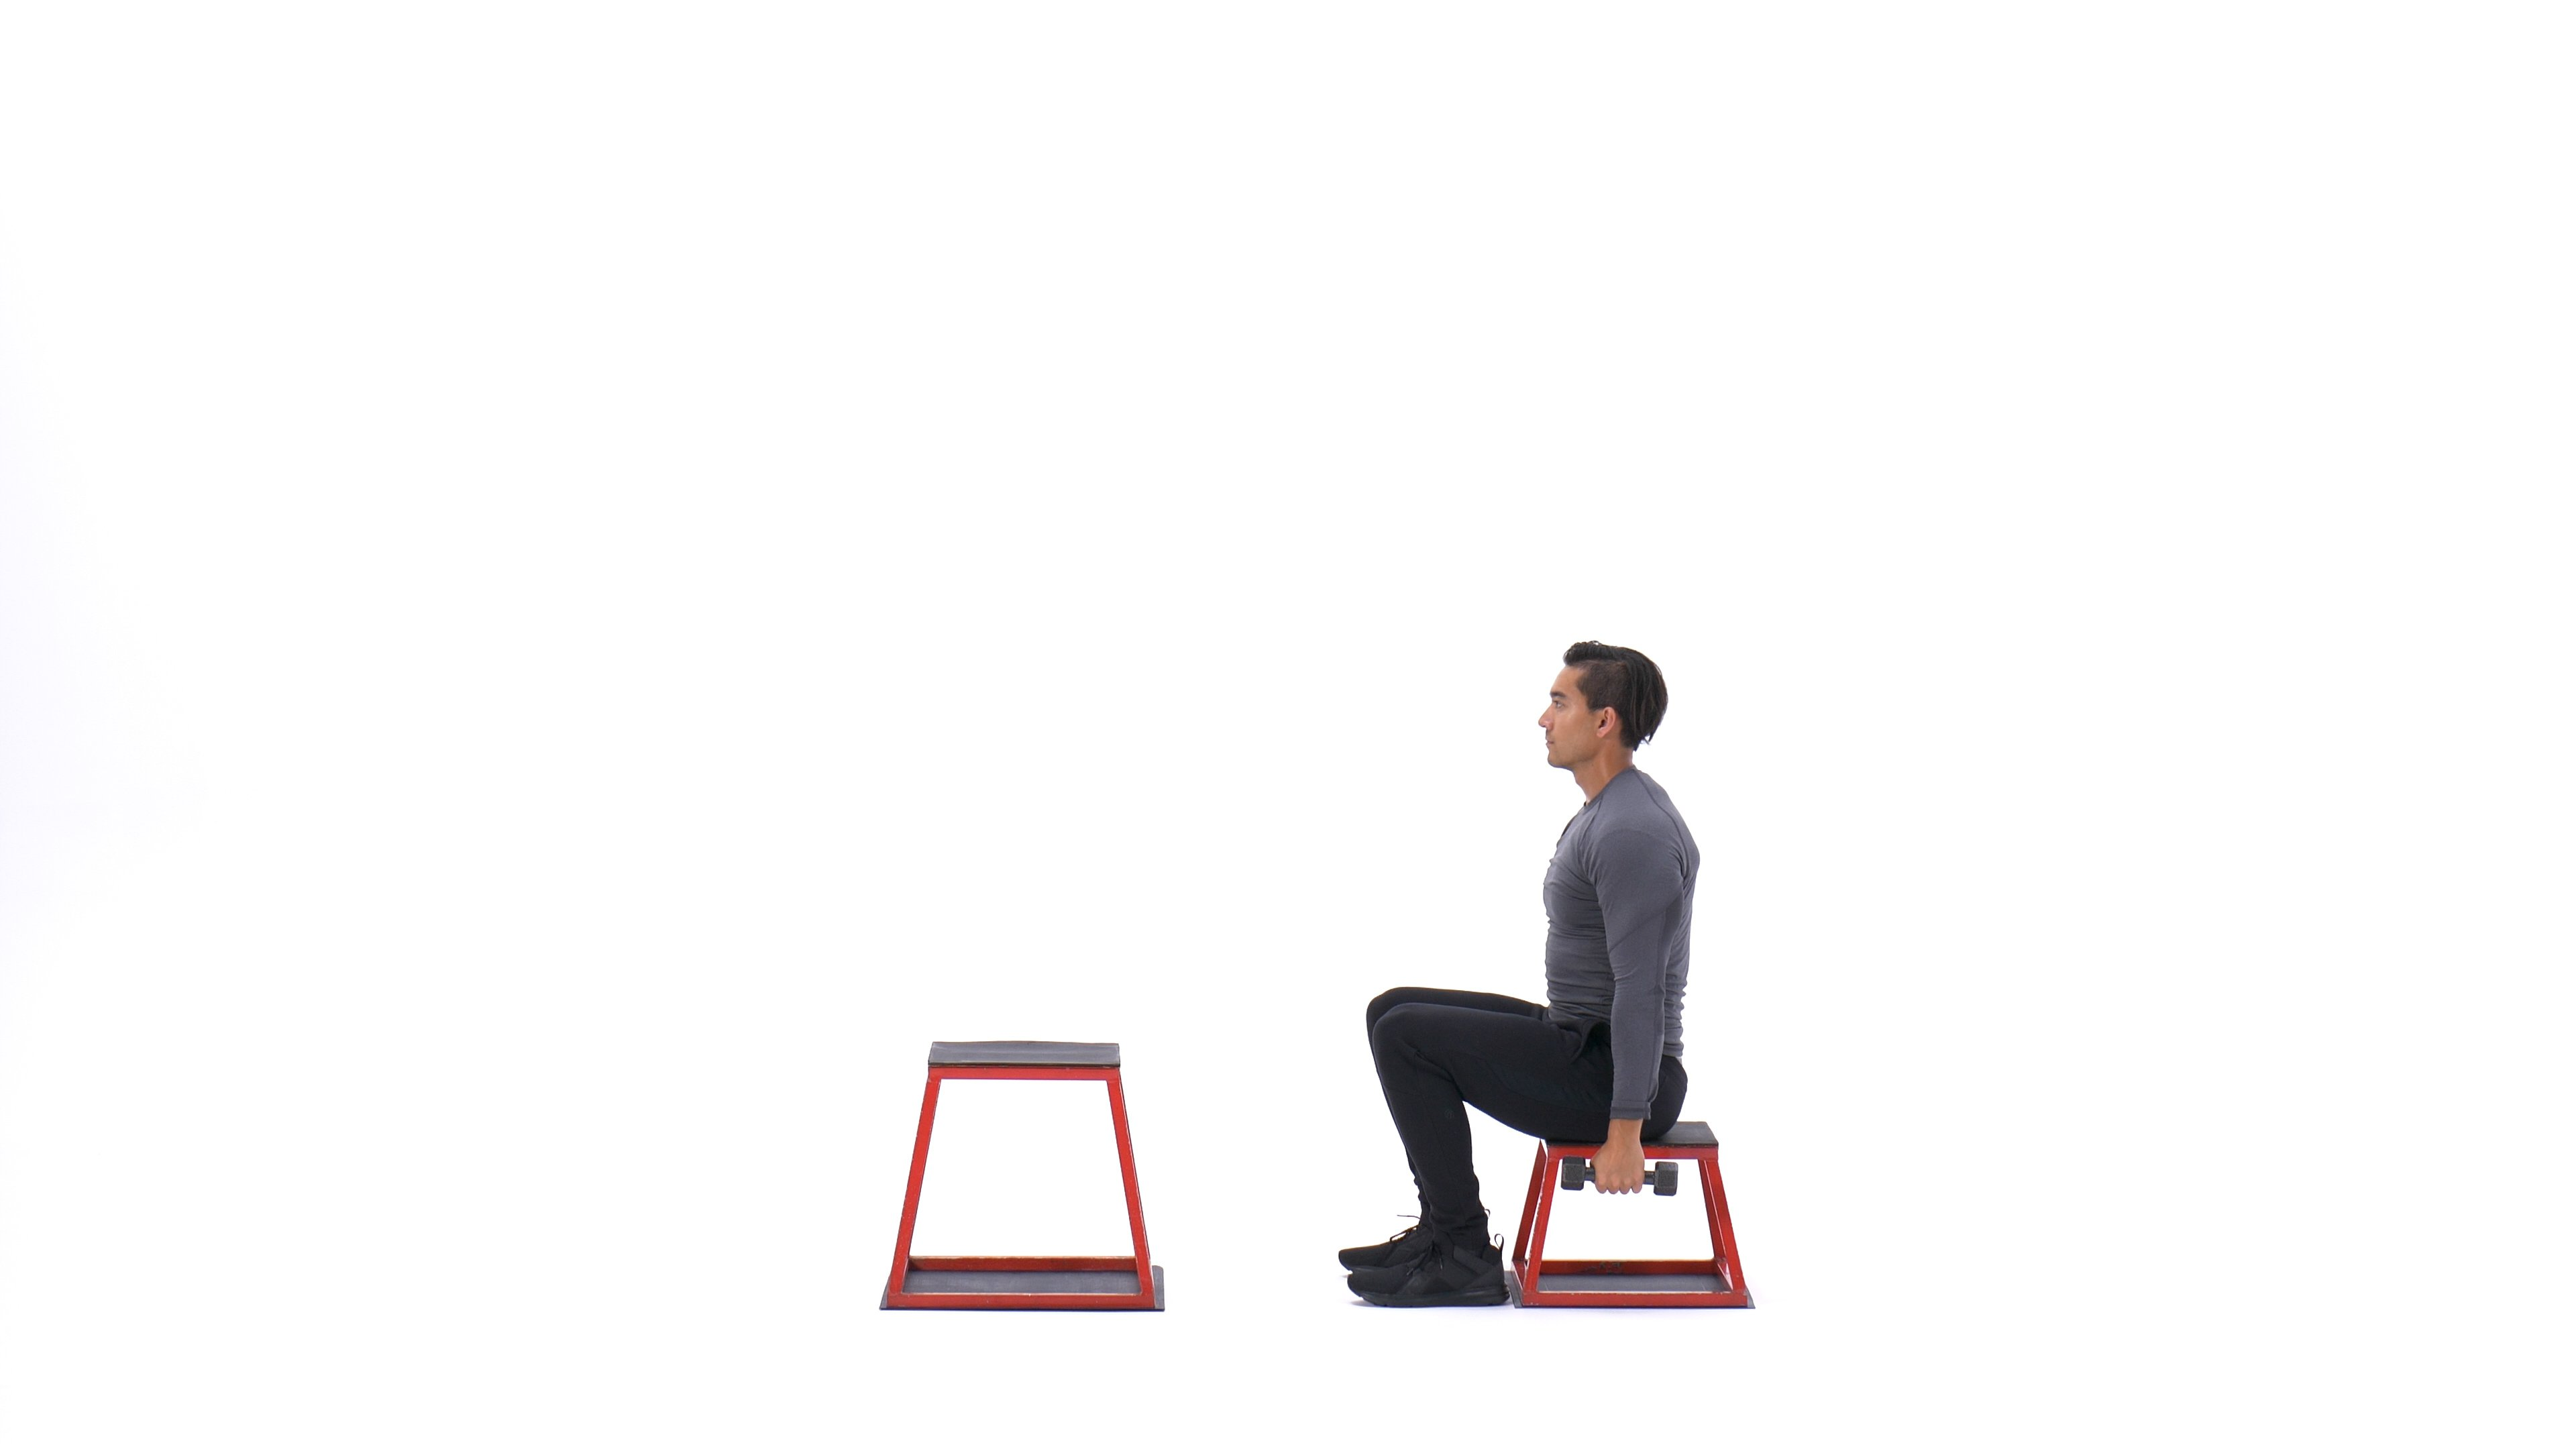 Dumbbell seated box jump image